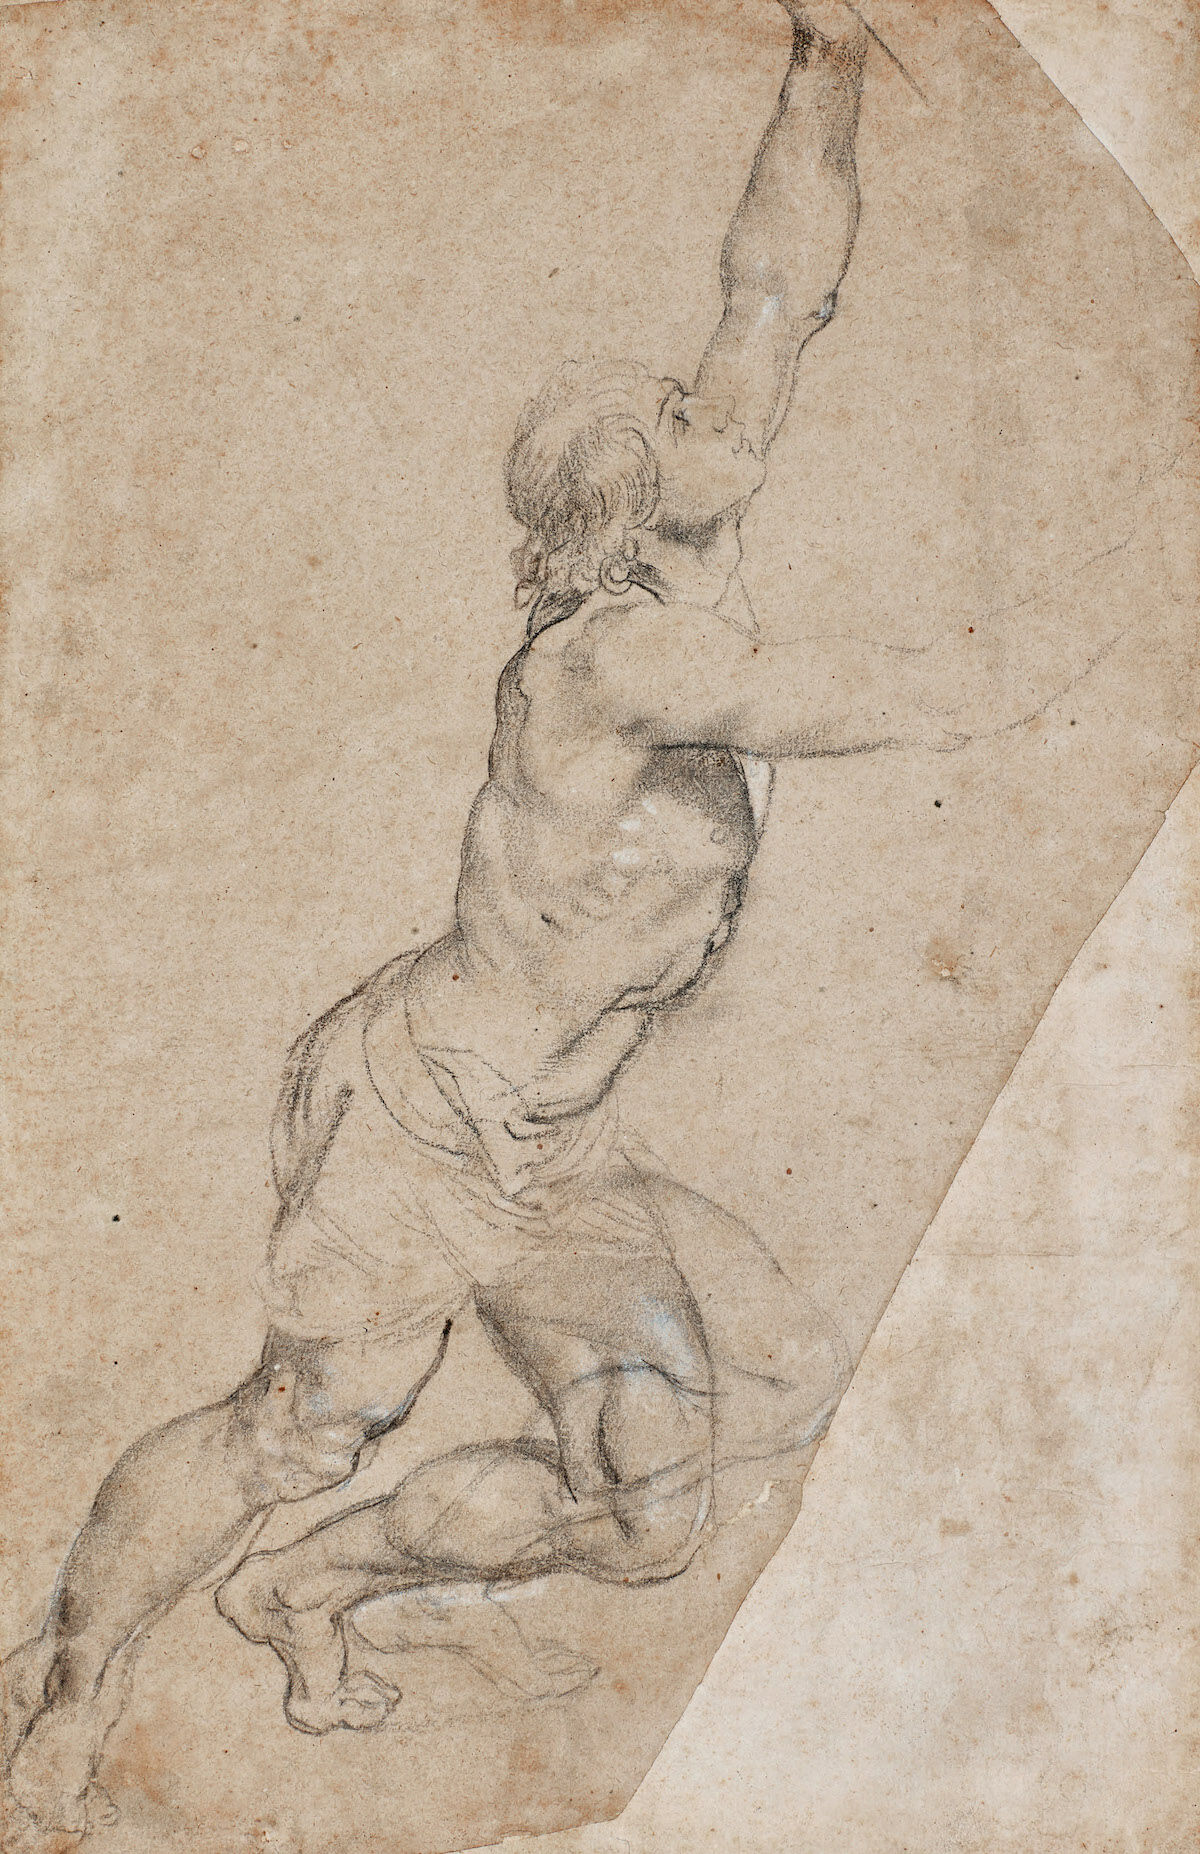 Peter Paul Rubens, Nude Study of a Young Man with Raised Arms, black chalk, heightened with white. Est. $2.5–3.5 million, sold for $8,202,000. Courtesy Sotheby's.